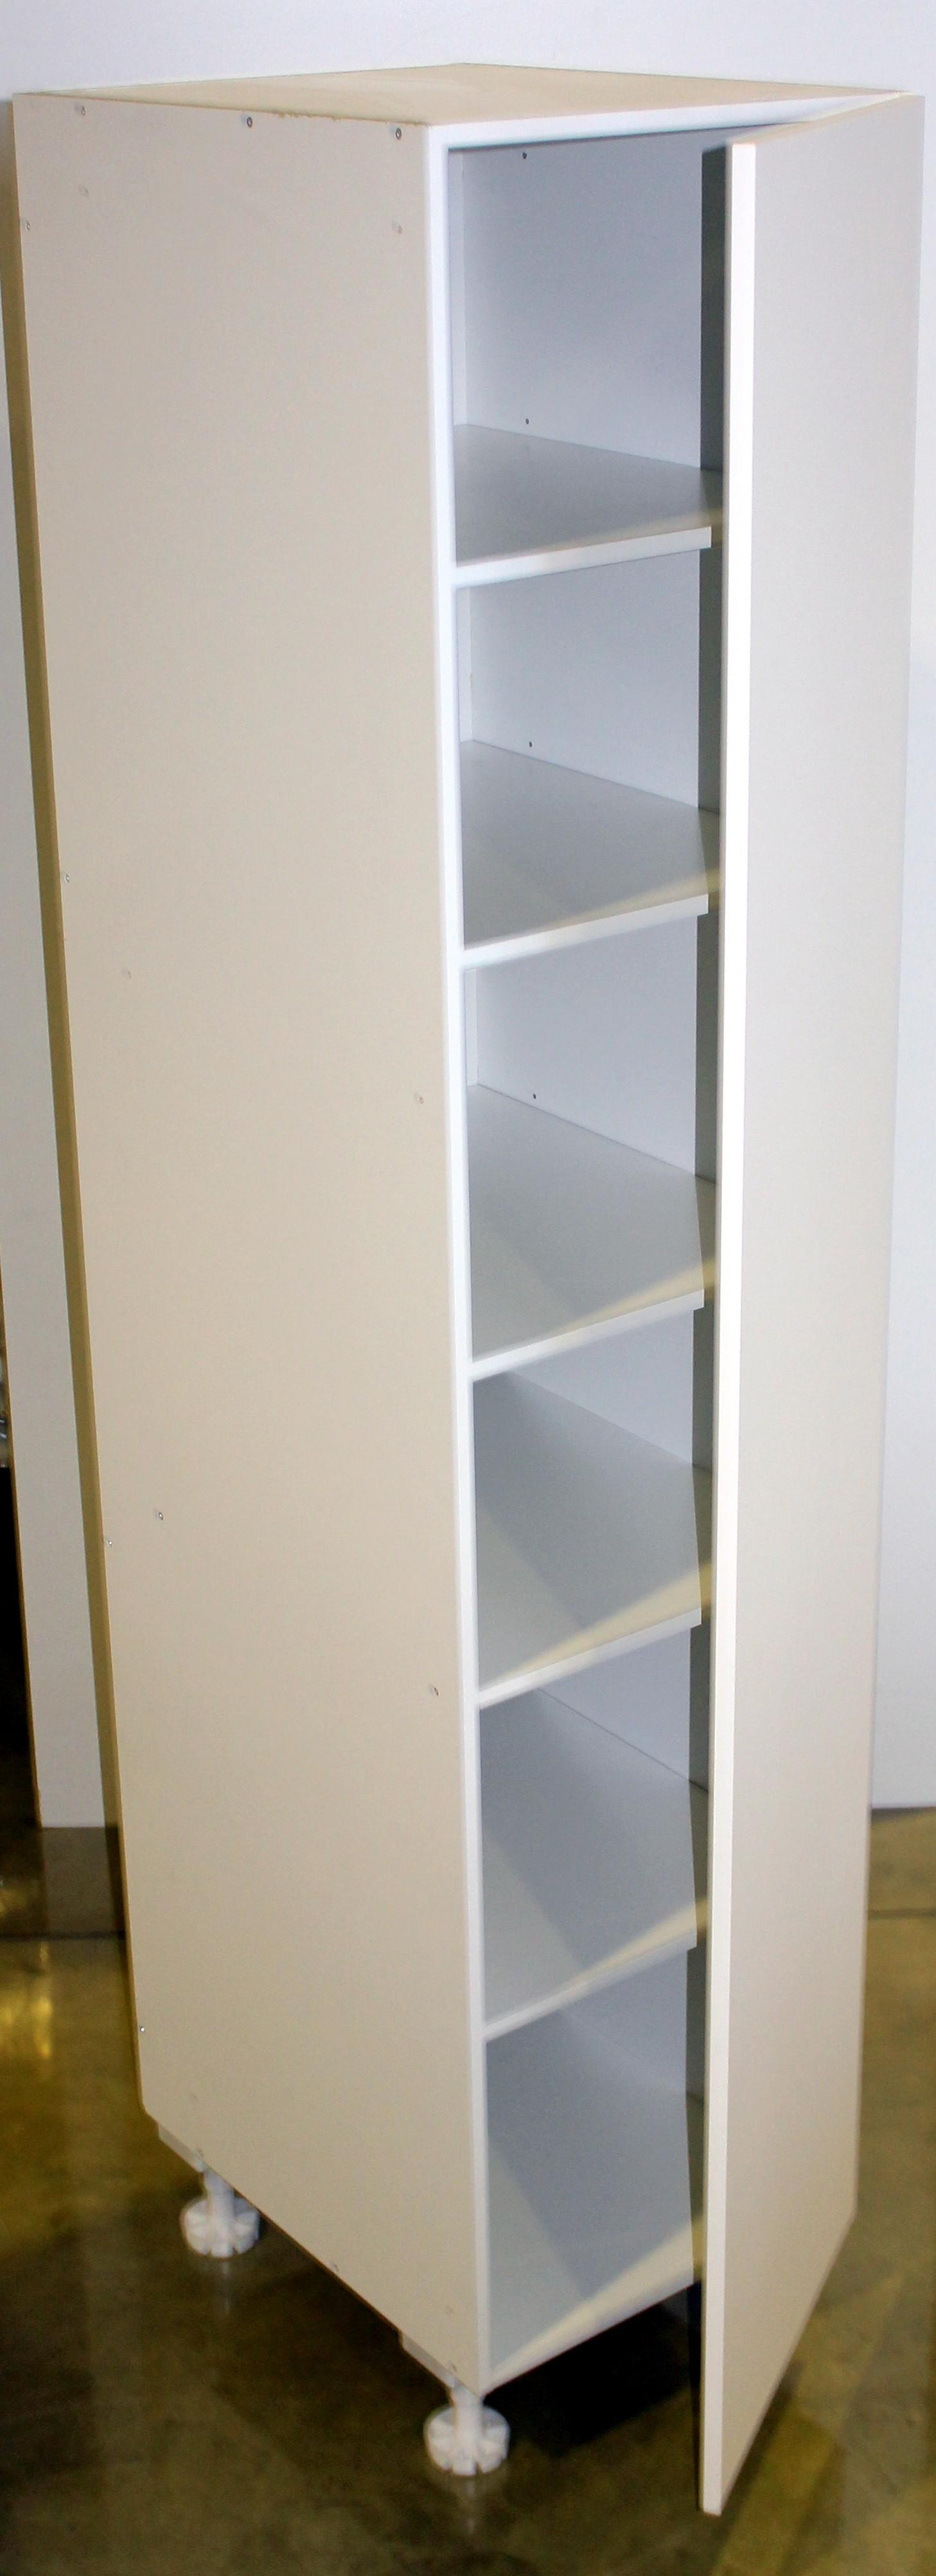 450mm single door pantry cabinet